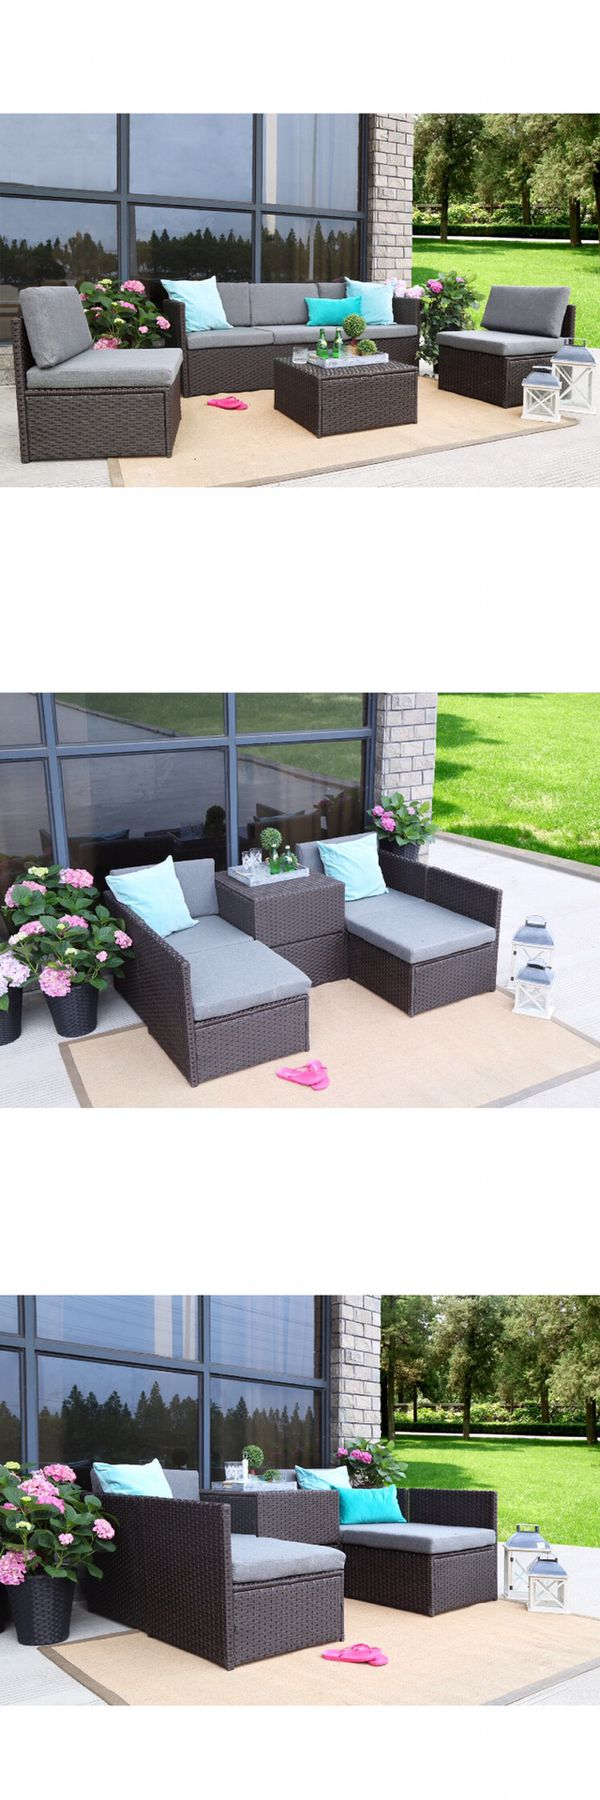 Azure Sky ASK16CH 4 Pieces Outdoor Furniture Complete ...